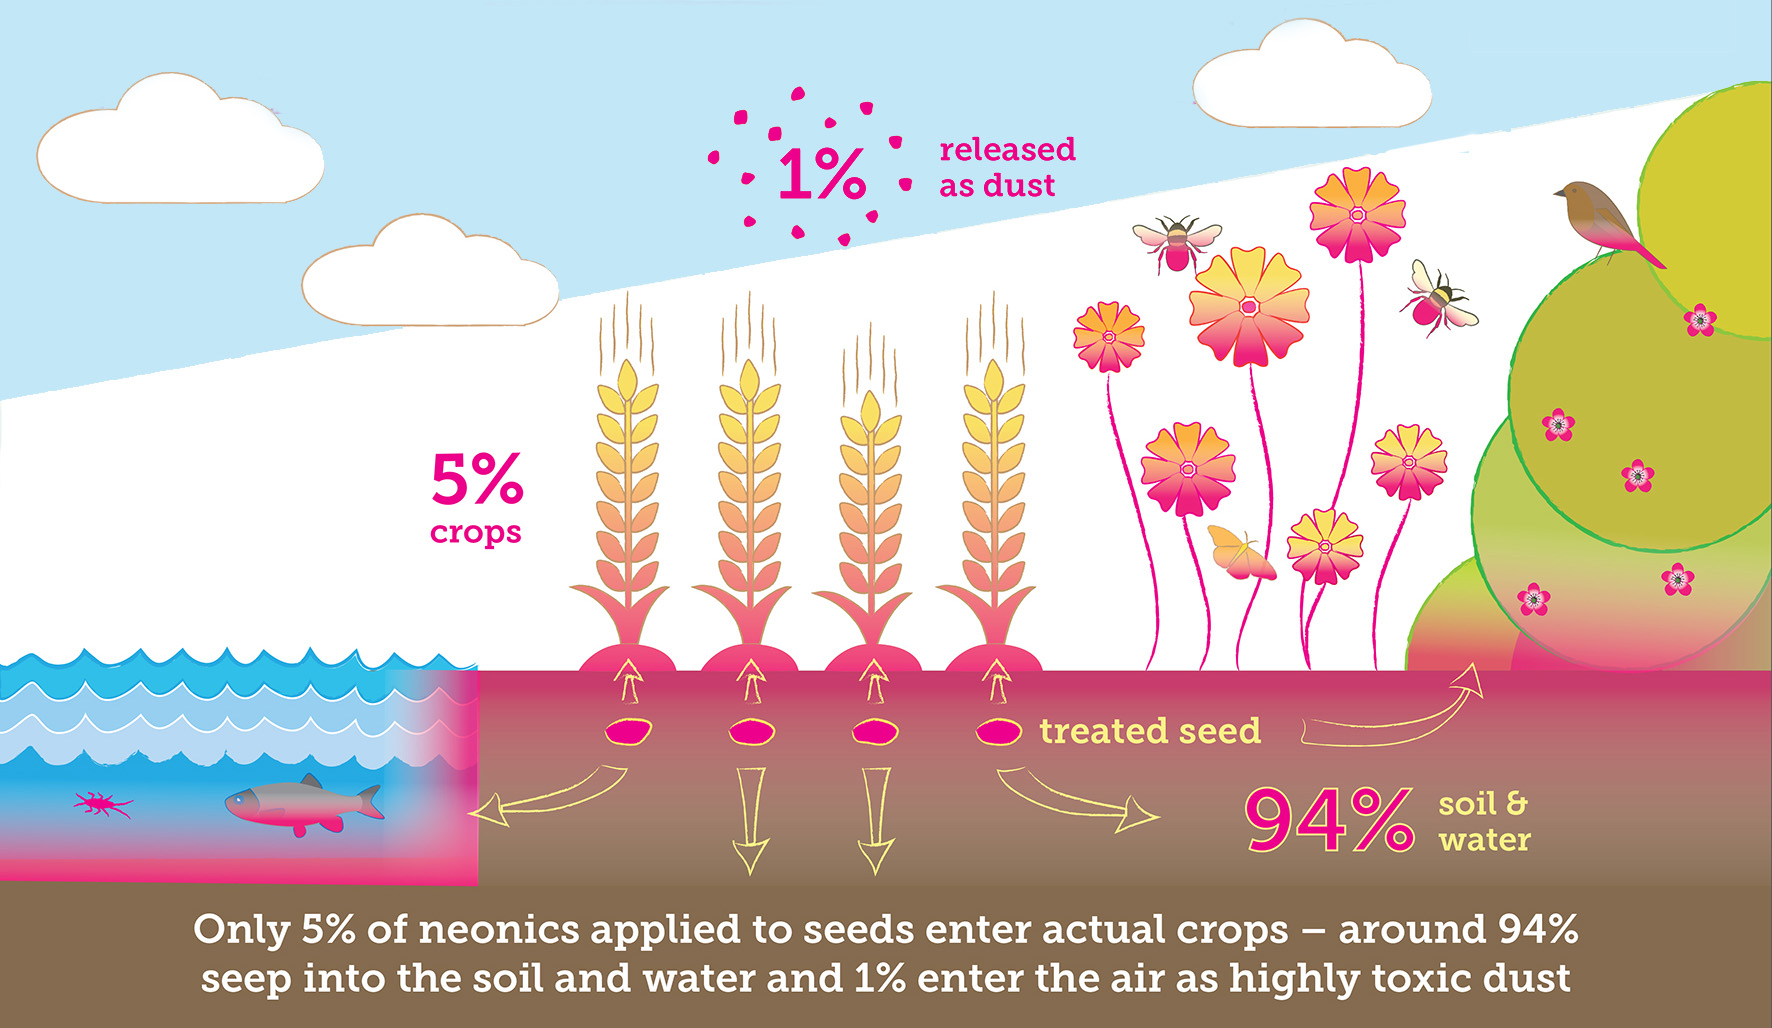 Only 5% of neonics applied to seeds enter actual crops